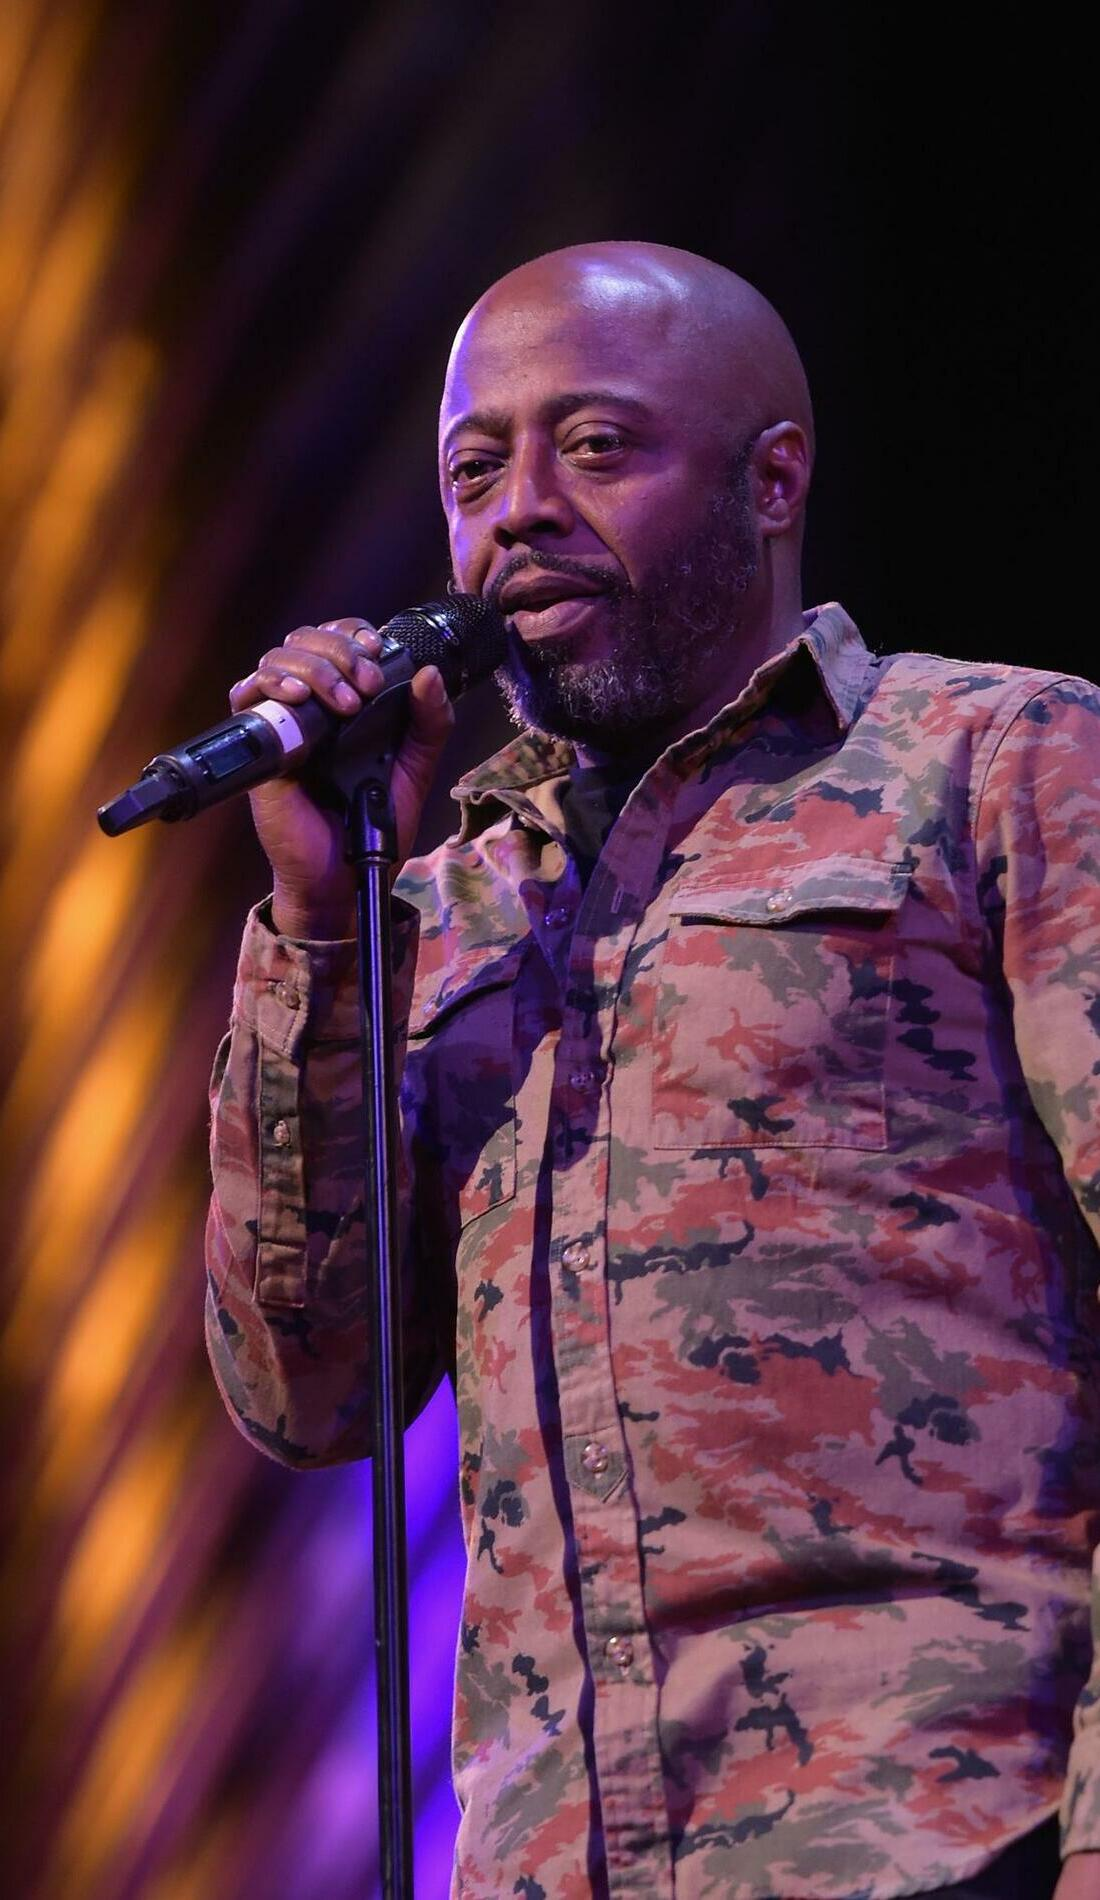 A Donnell Rawlings live event